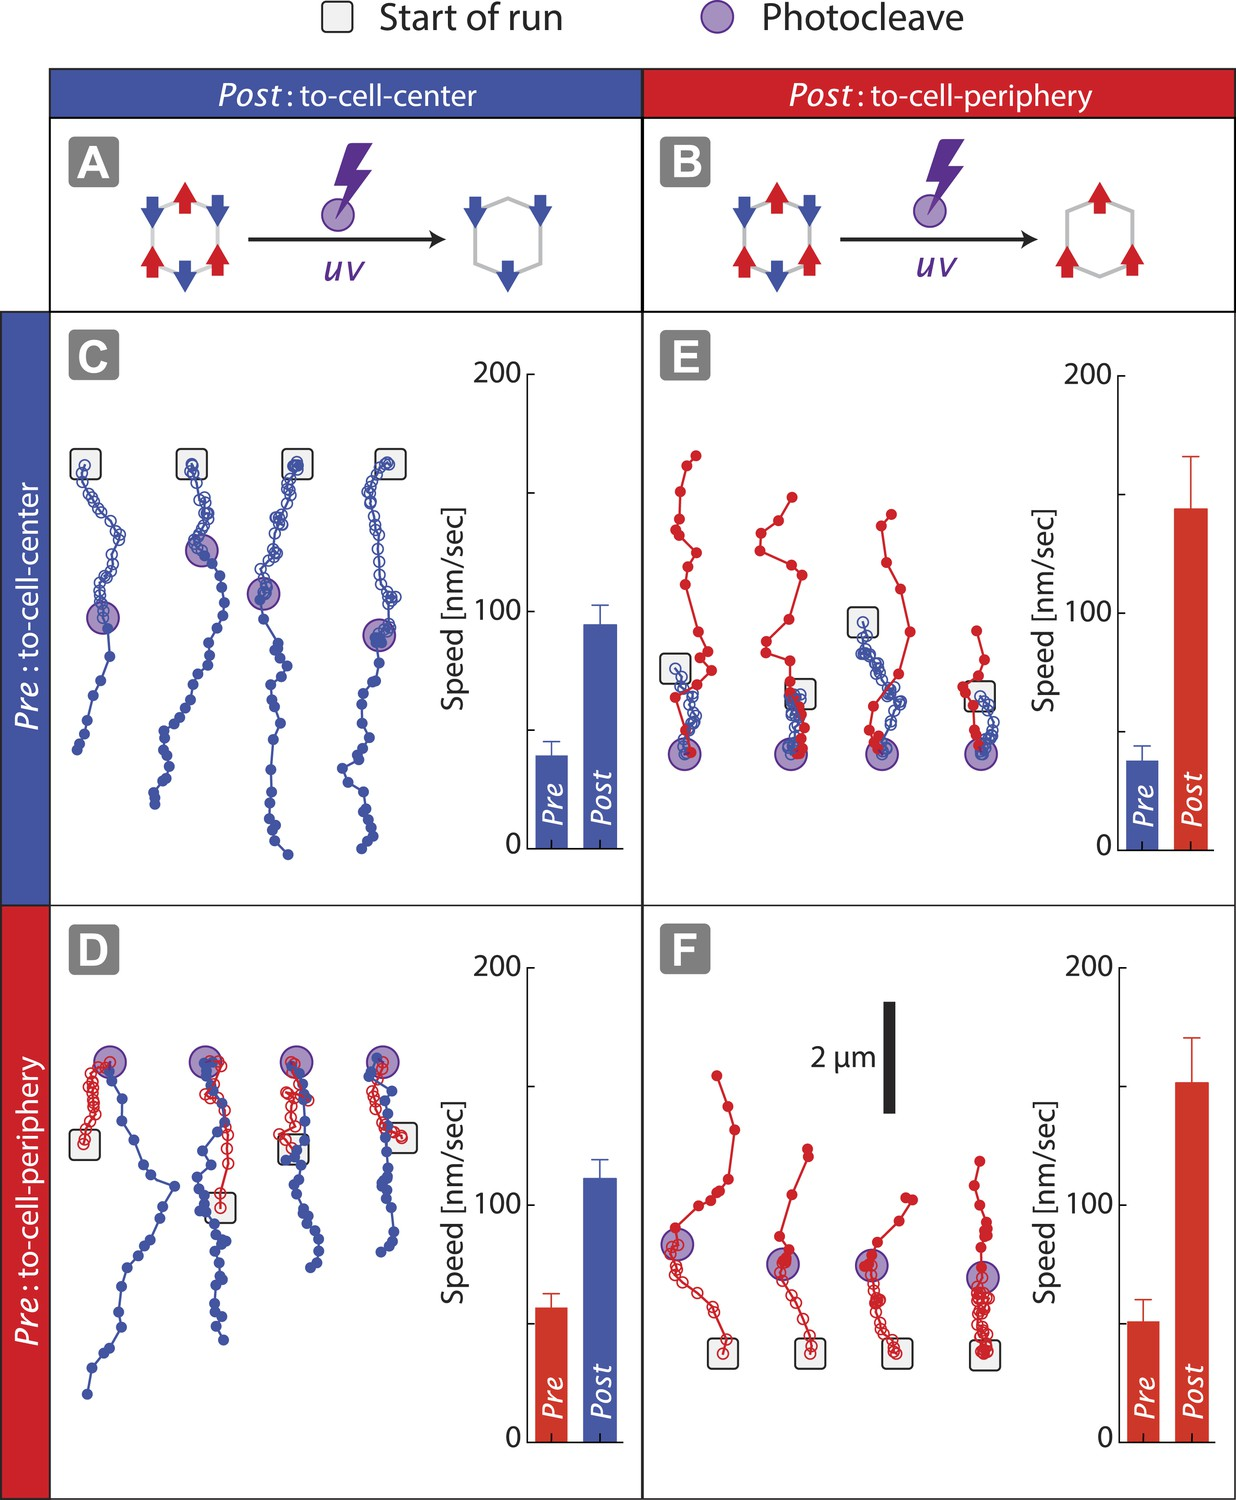 Tuning Myosin Driven Sorting On Cellular Actin Networks Elife Motor Control Circuit File Alternative Link Bidirectionmotorspeed Disengagement Of One Species Resolves The Competition